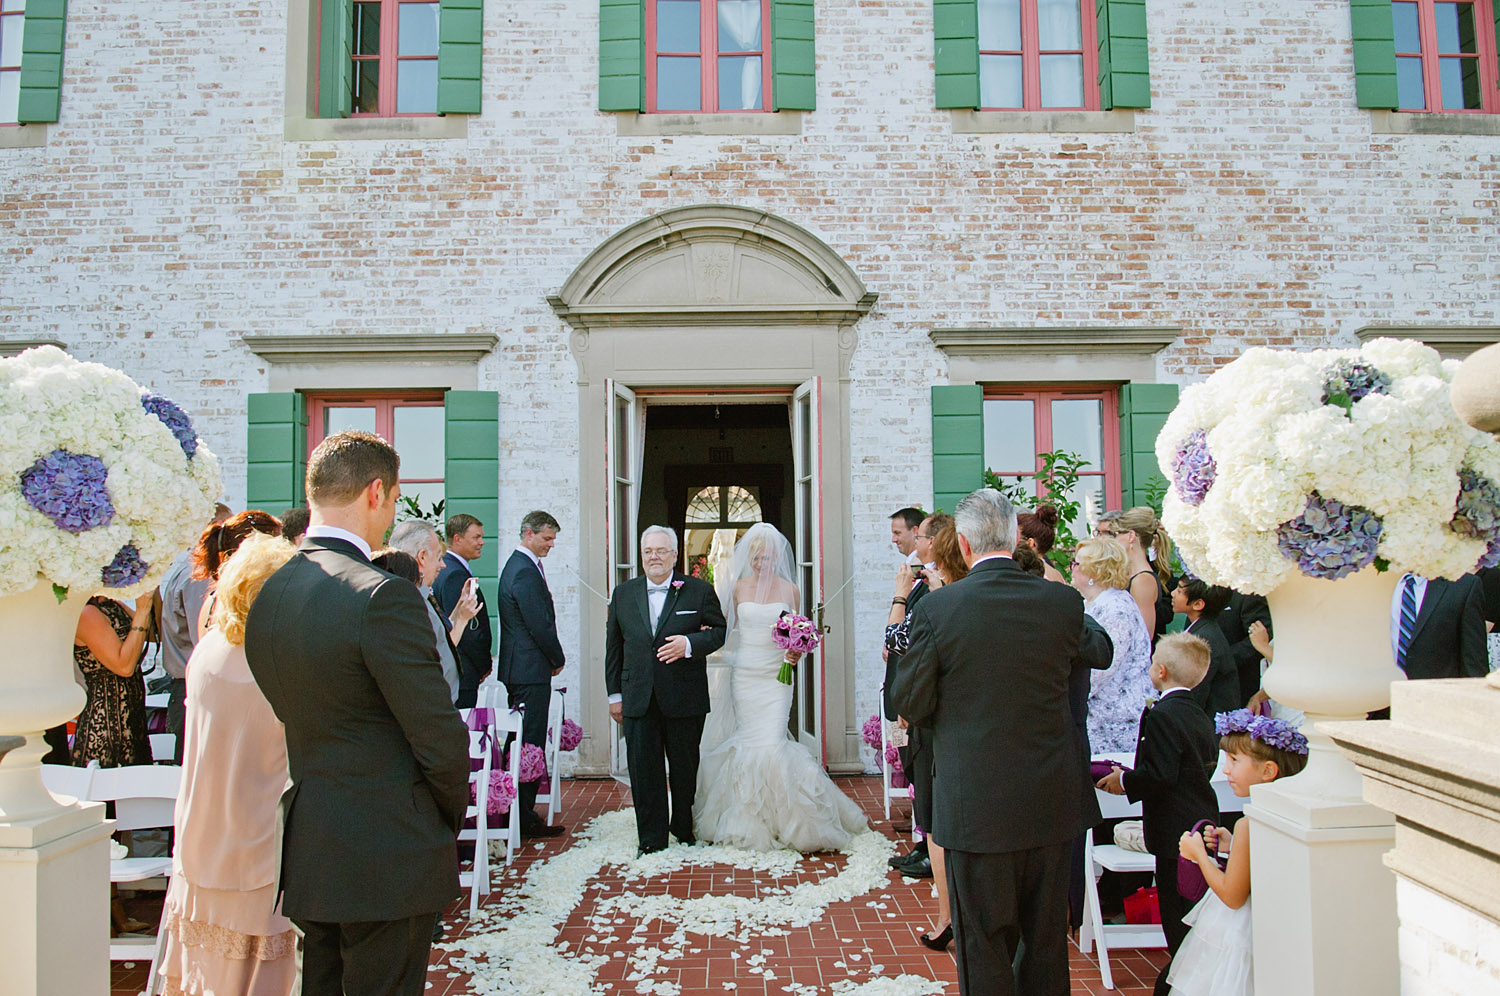 the bride walks down the aisle flanked with purple hydrangeas at this Italian destination wedding at the Villa Terrace - a favorite wedding venue of destination wedding photographer Lexia Frank, who is a film photographer of luxury and estination weddings